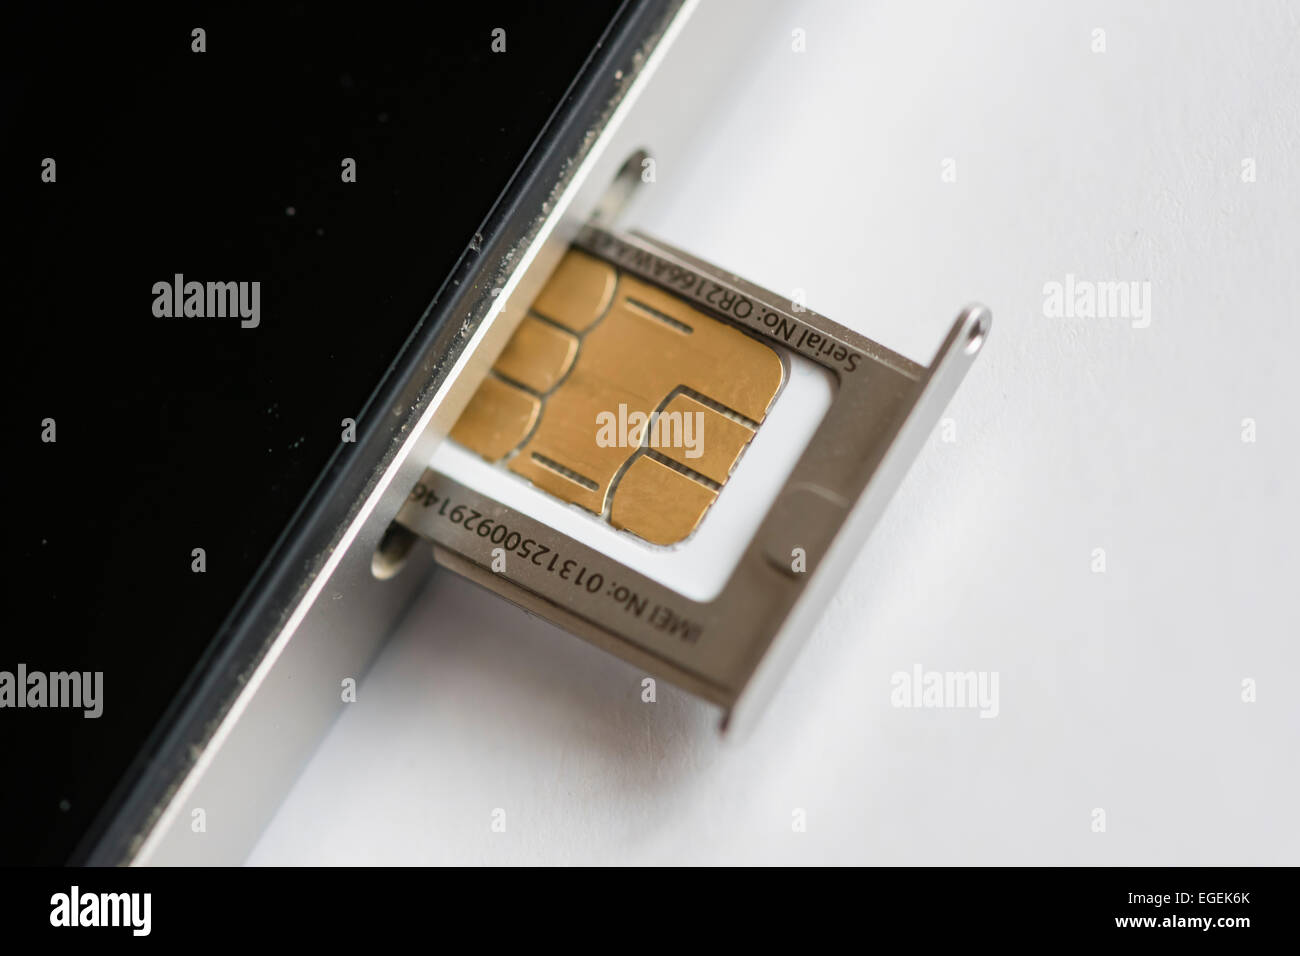 How to insert a sim card into the iPhone